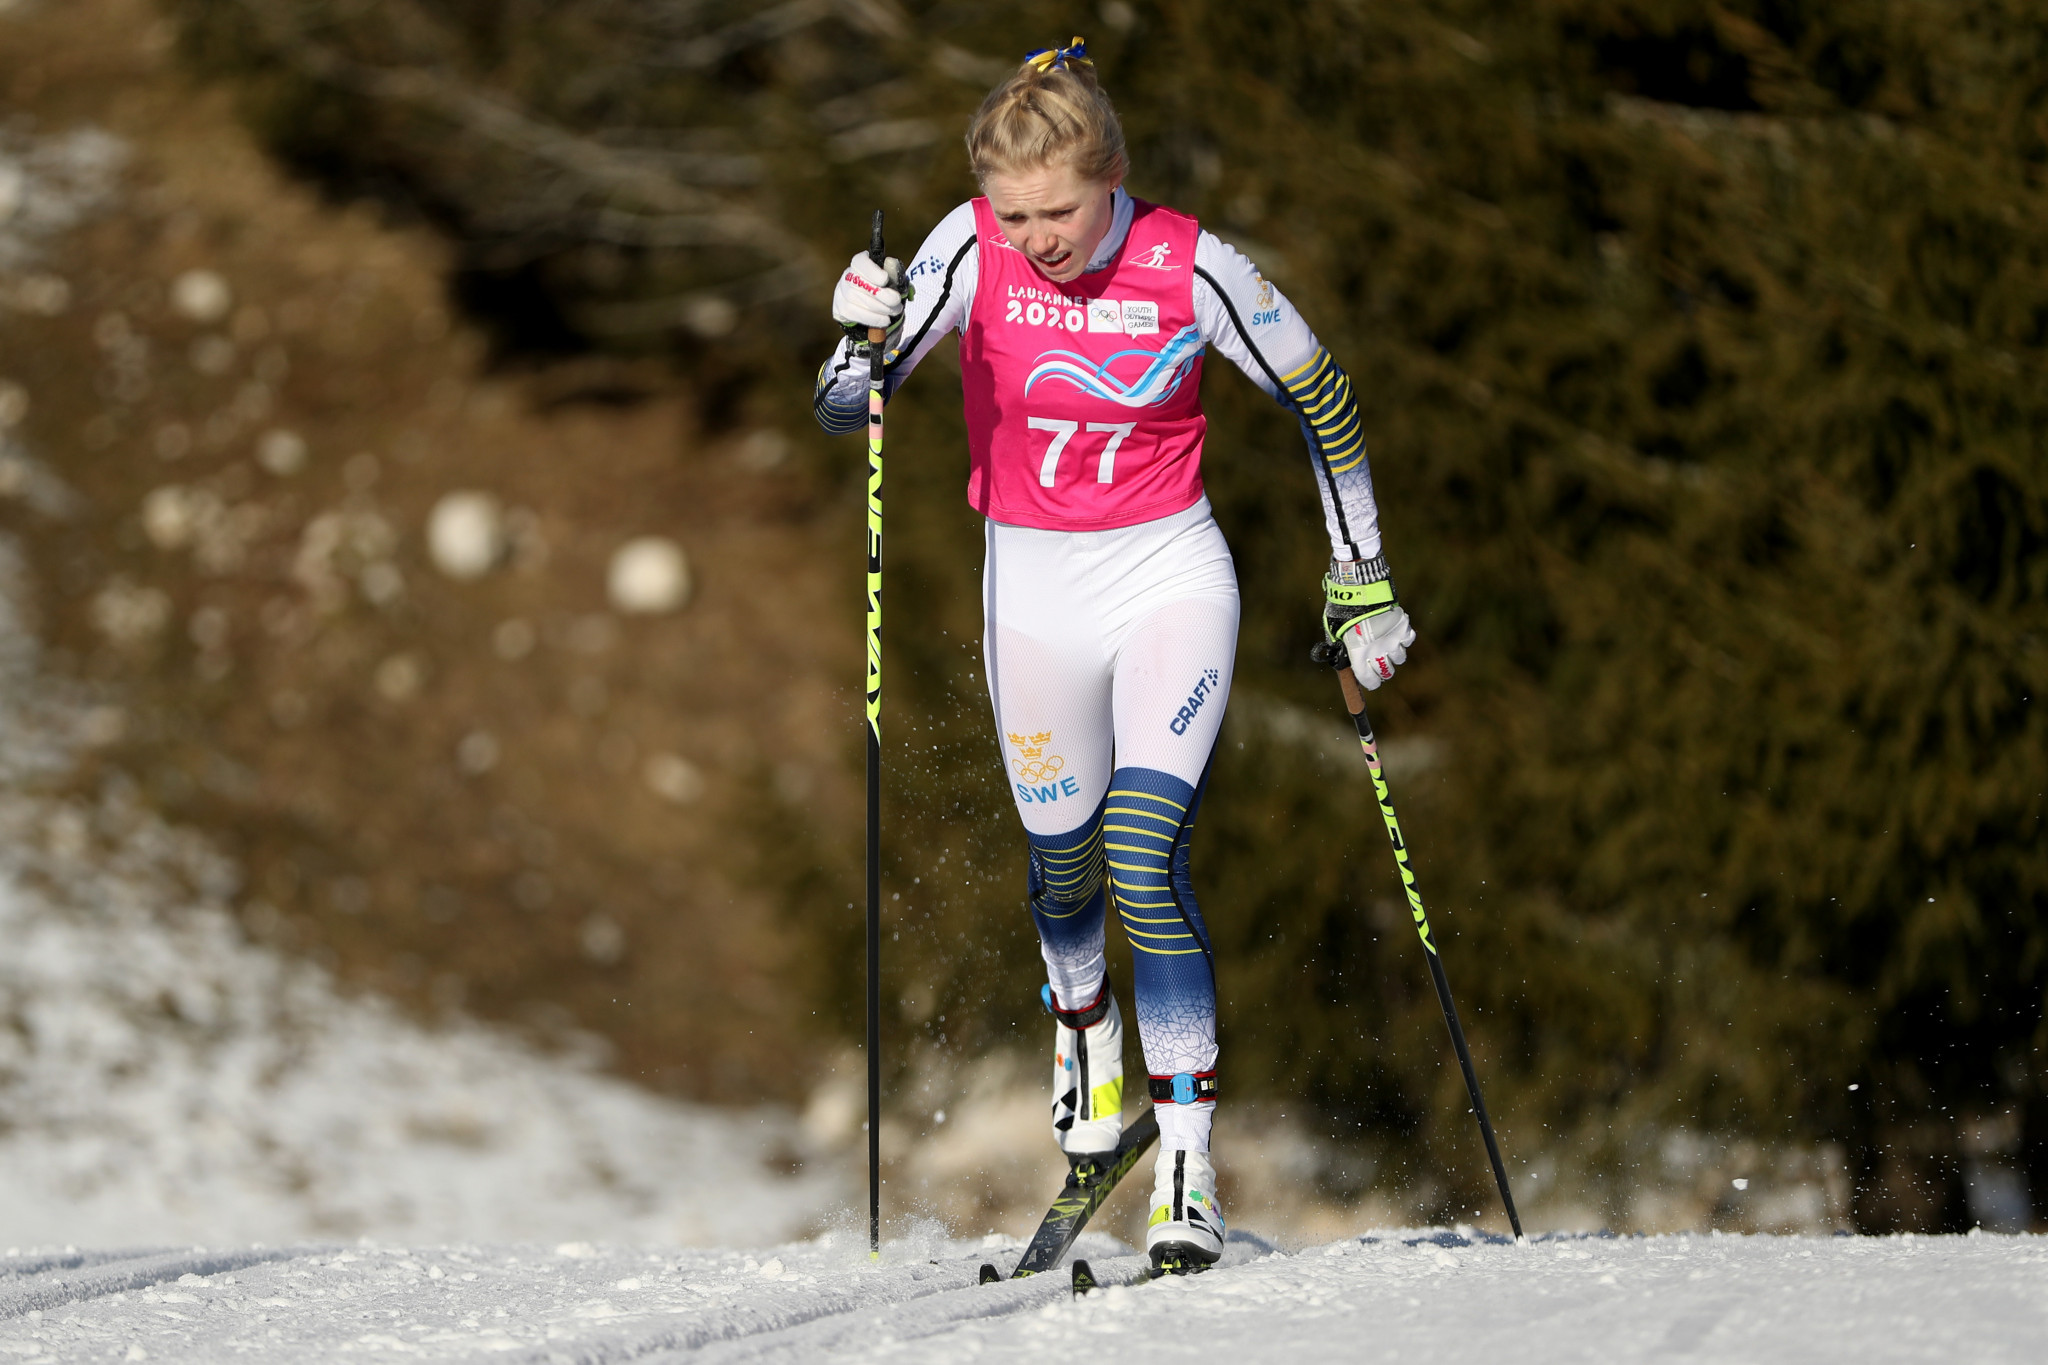 Sweden's Maerta Rosenberg won her first gold after previous silver and bronze medal finishes ©Getty Images